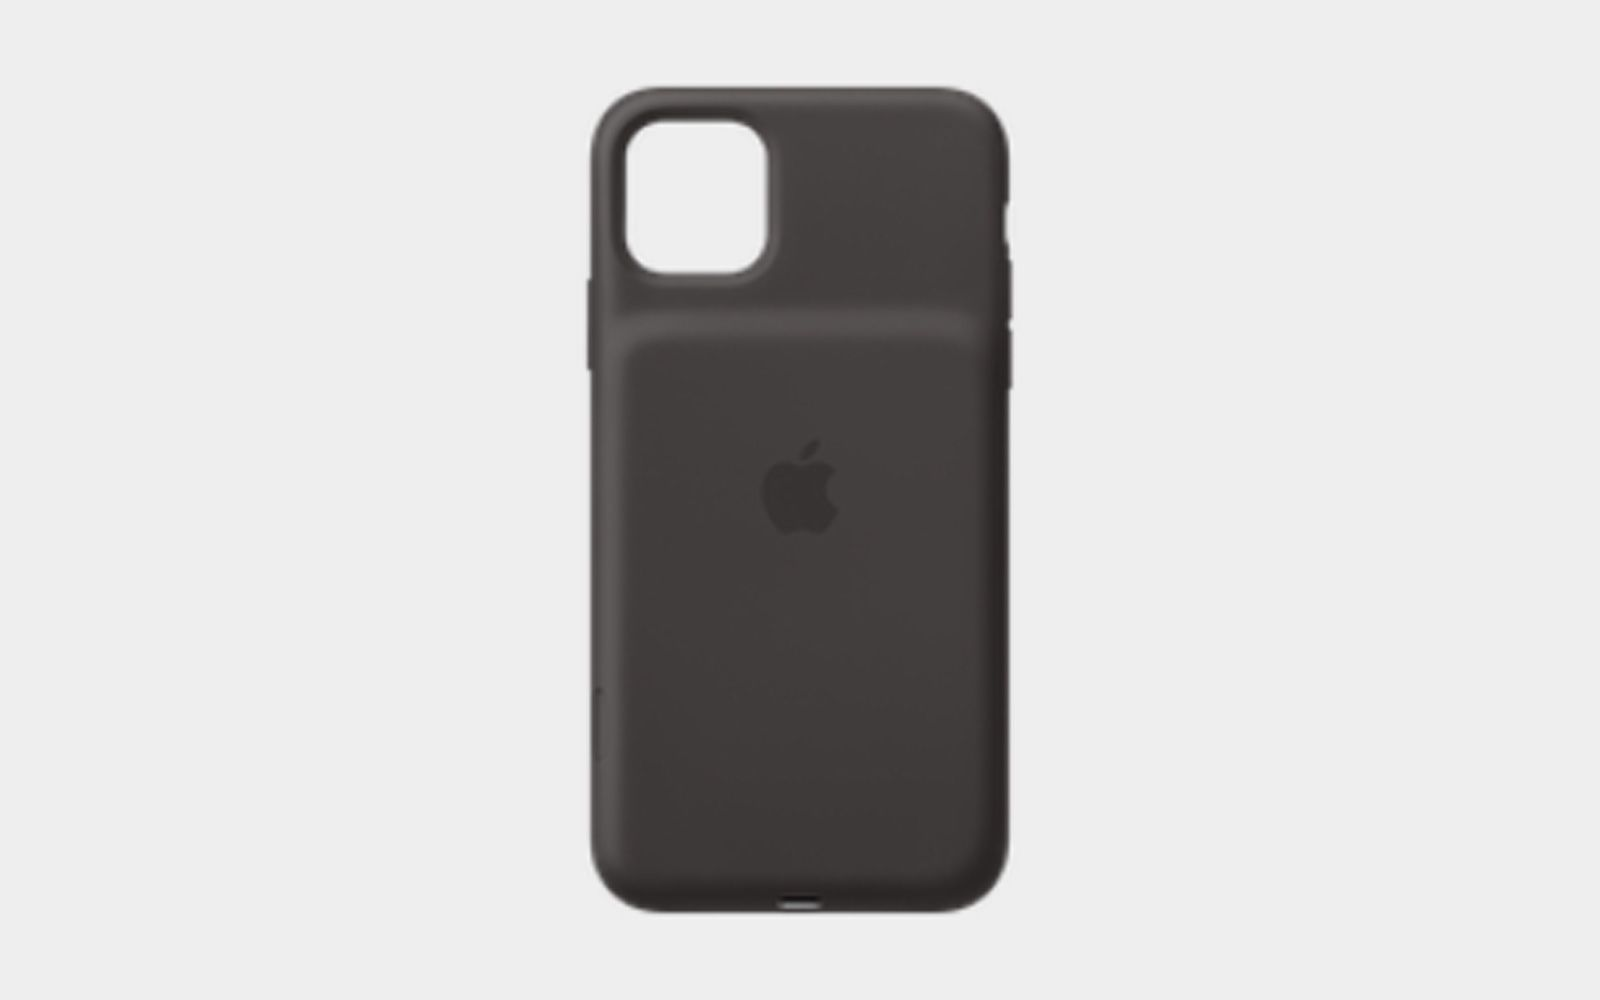 Apple May Sell Iphone 11 And 11 Pro Smart Battery Cases Iphone Silicone Iphone Cases Iphone 11